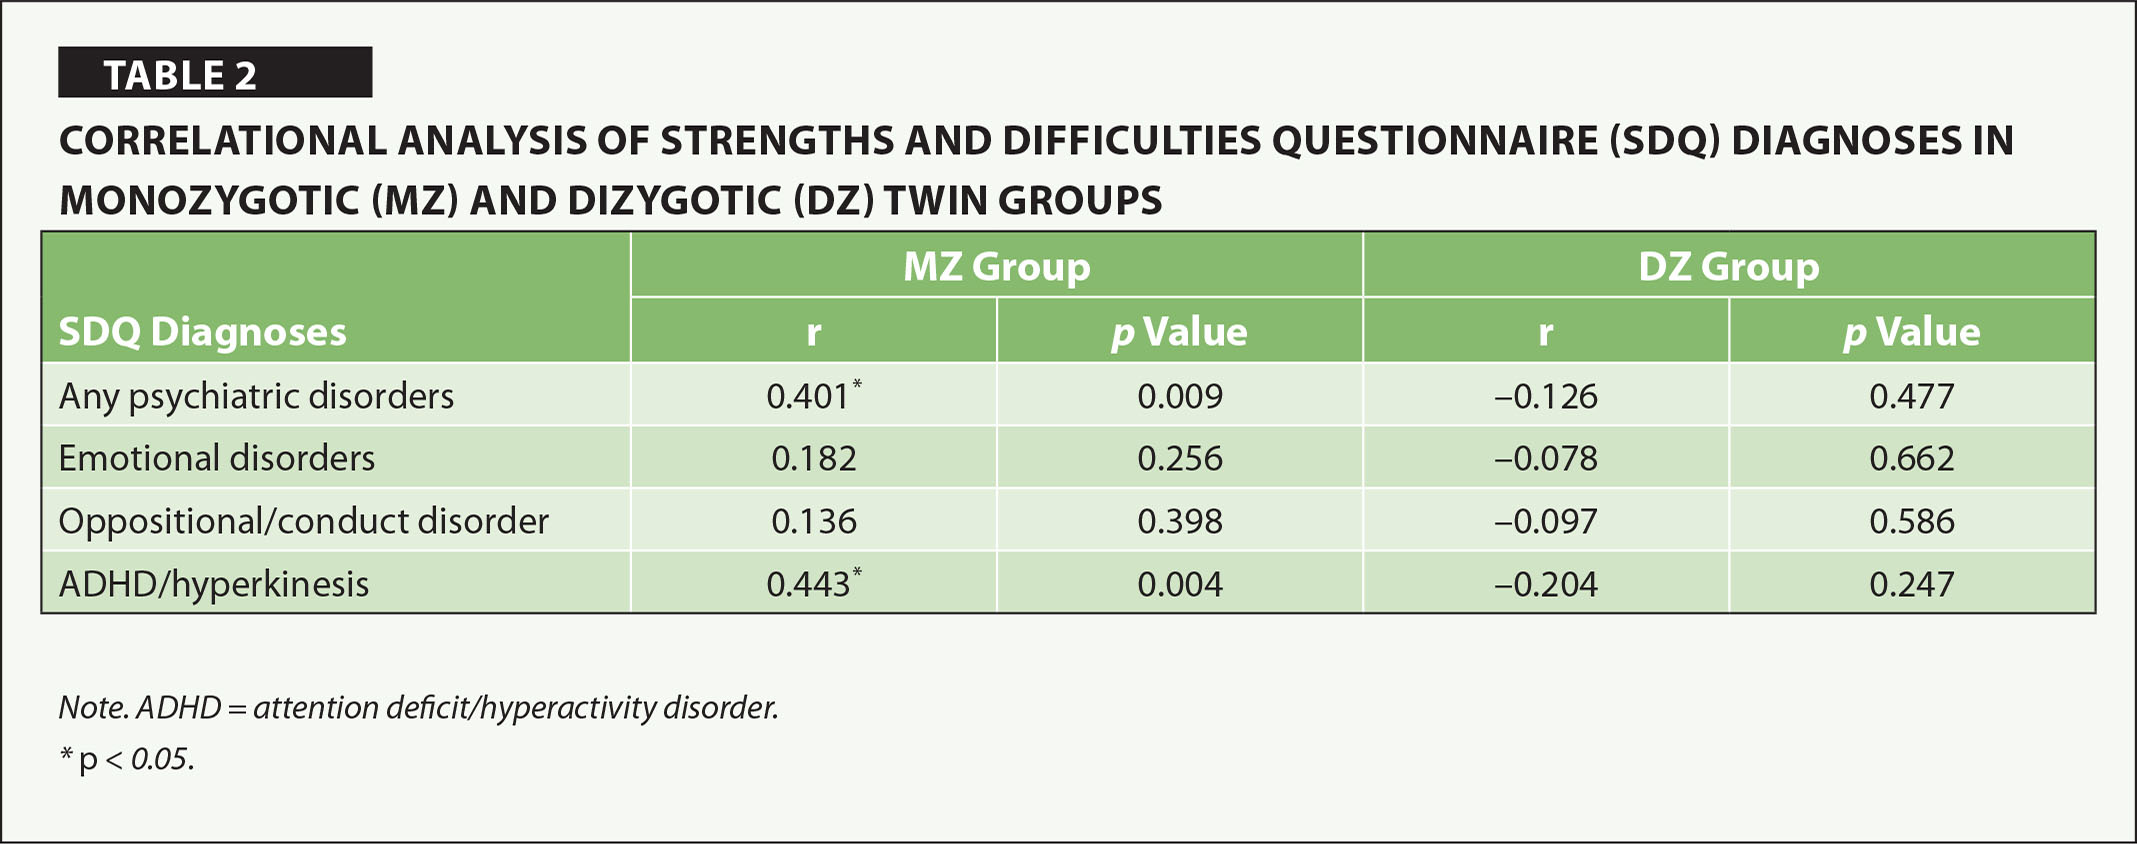 Correlational Analysis of Strengths and Difficulties Questionnaire (SDQ) Diagnoses in Monozygotic (MZ) and Dizygotic (DZ) Twin Groups